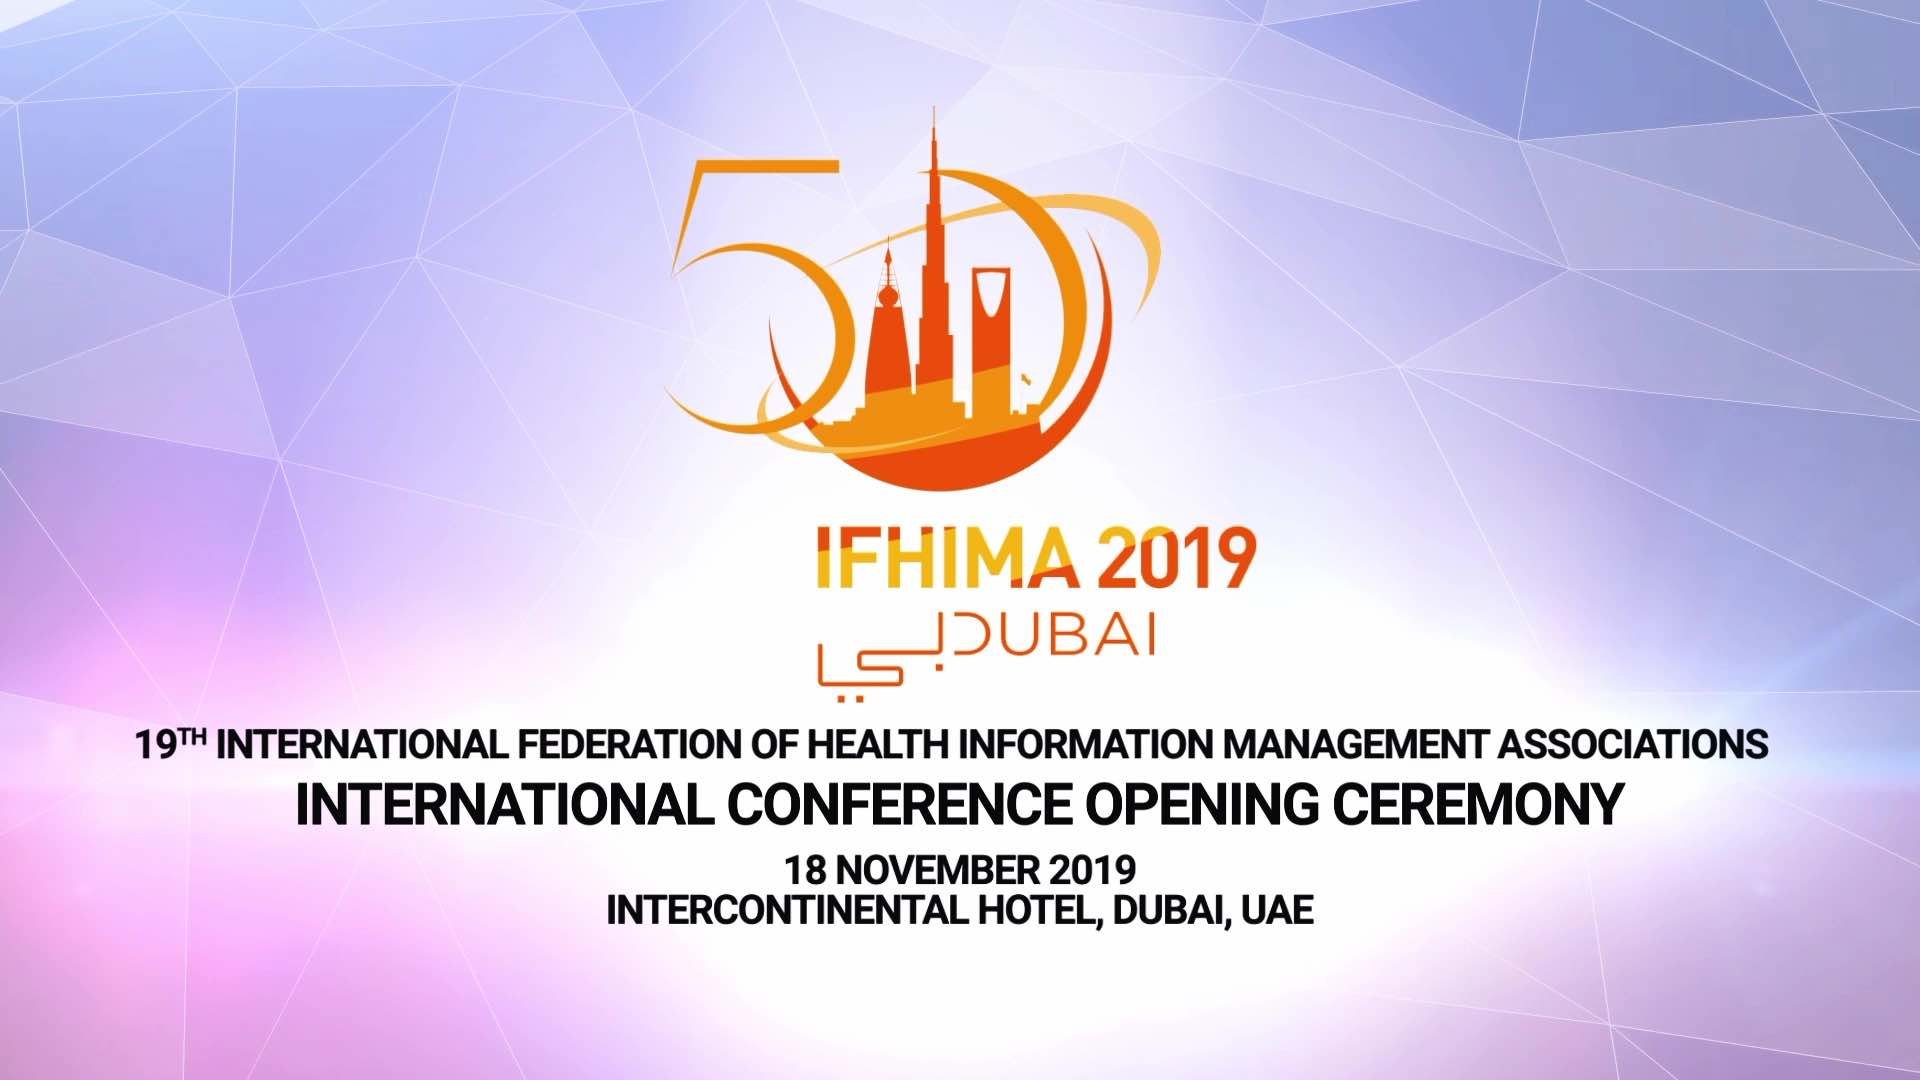 19th IFHIMA International Congress 2019